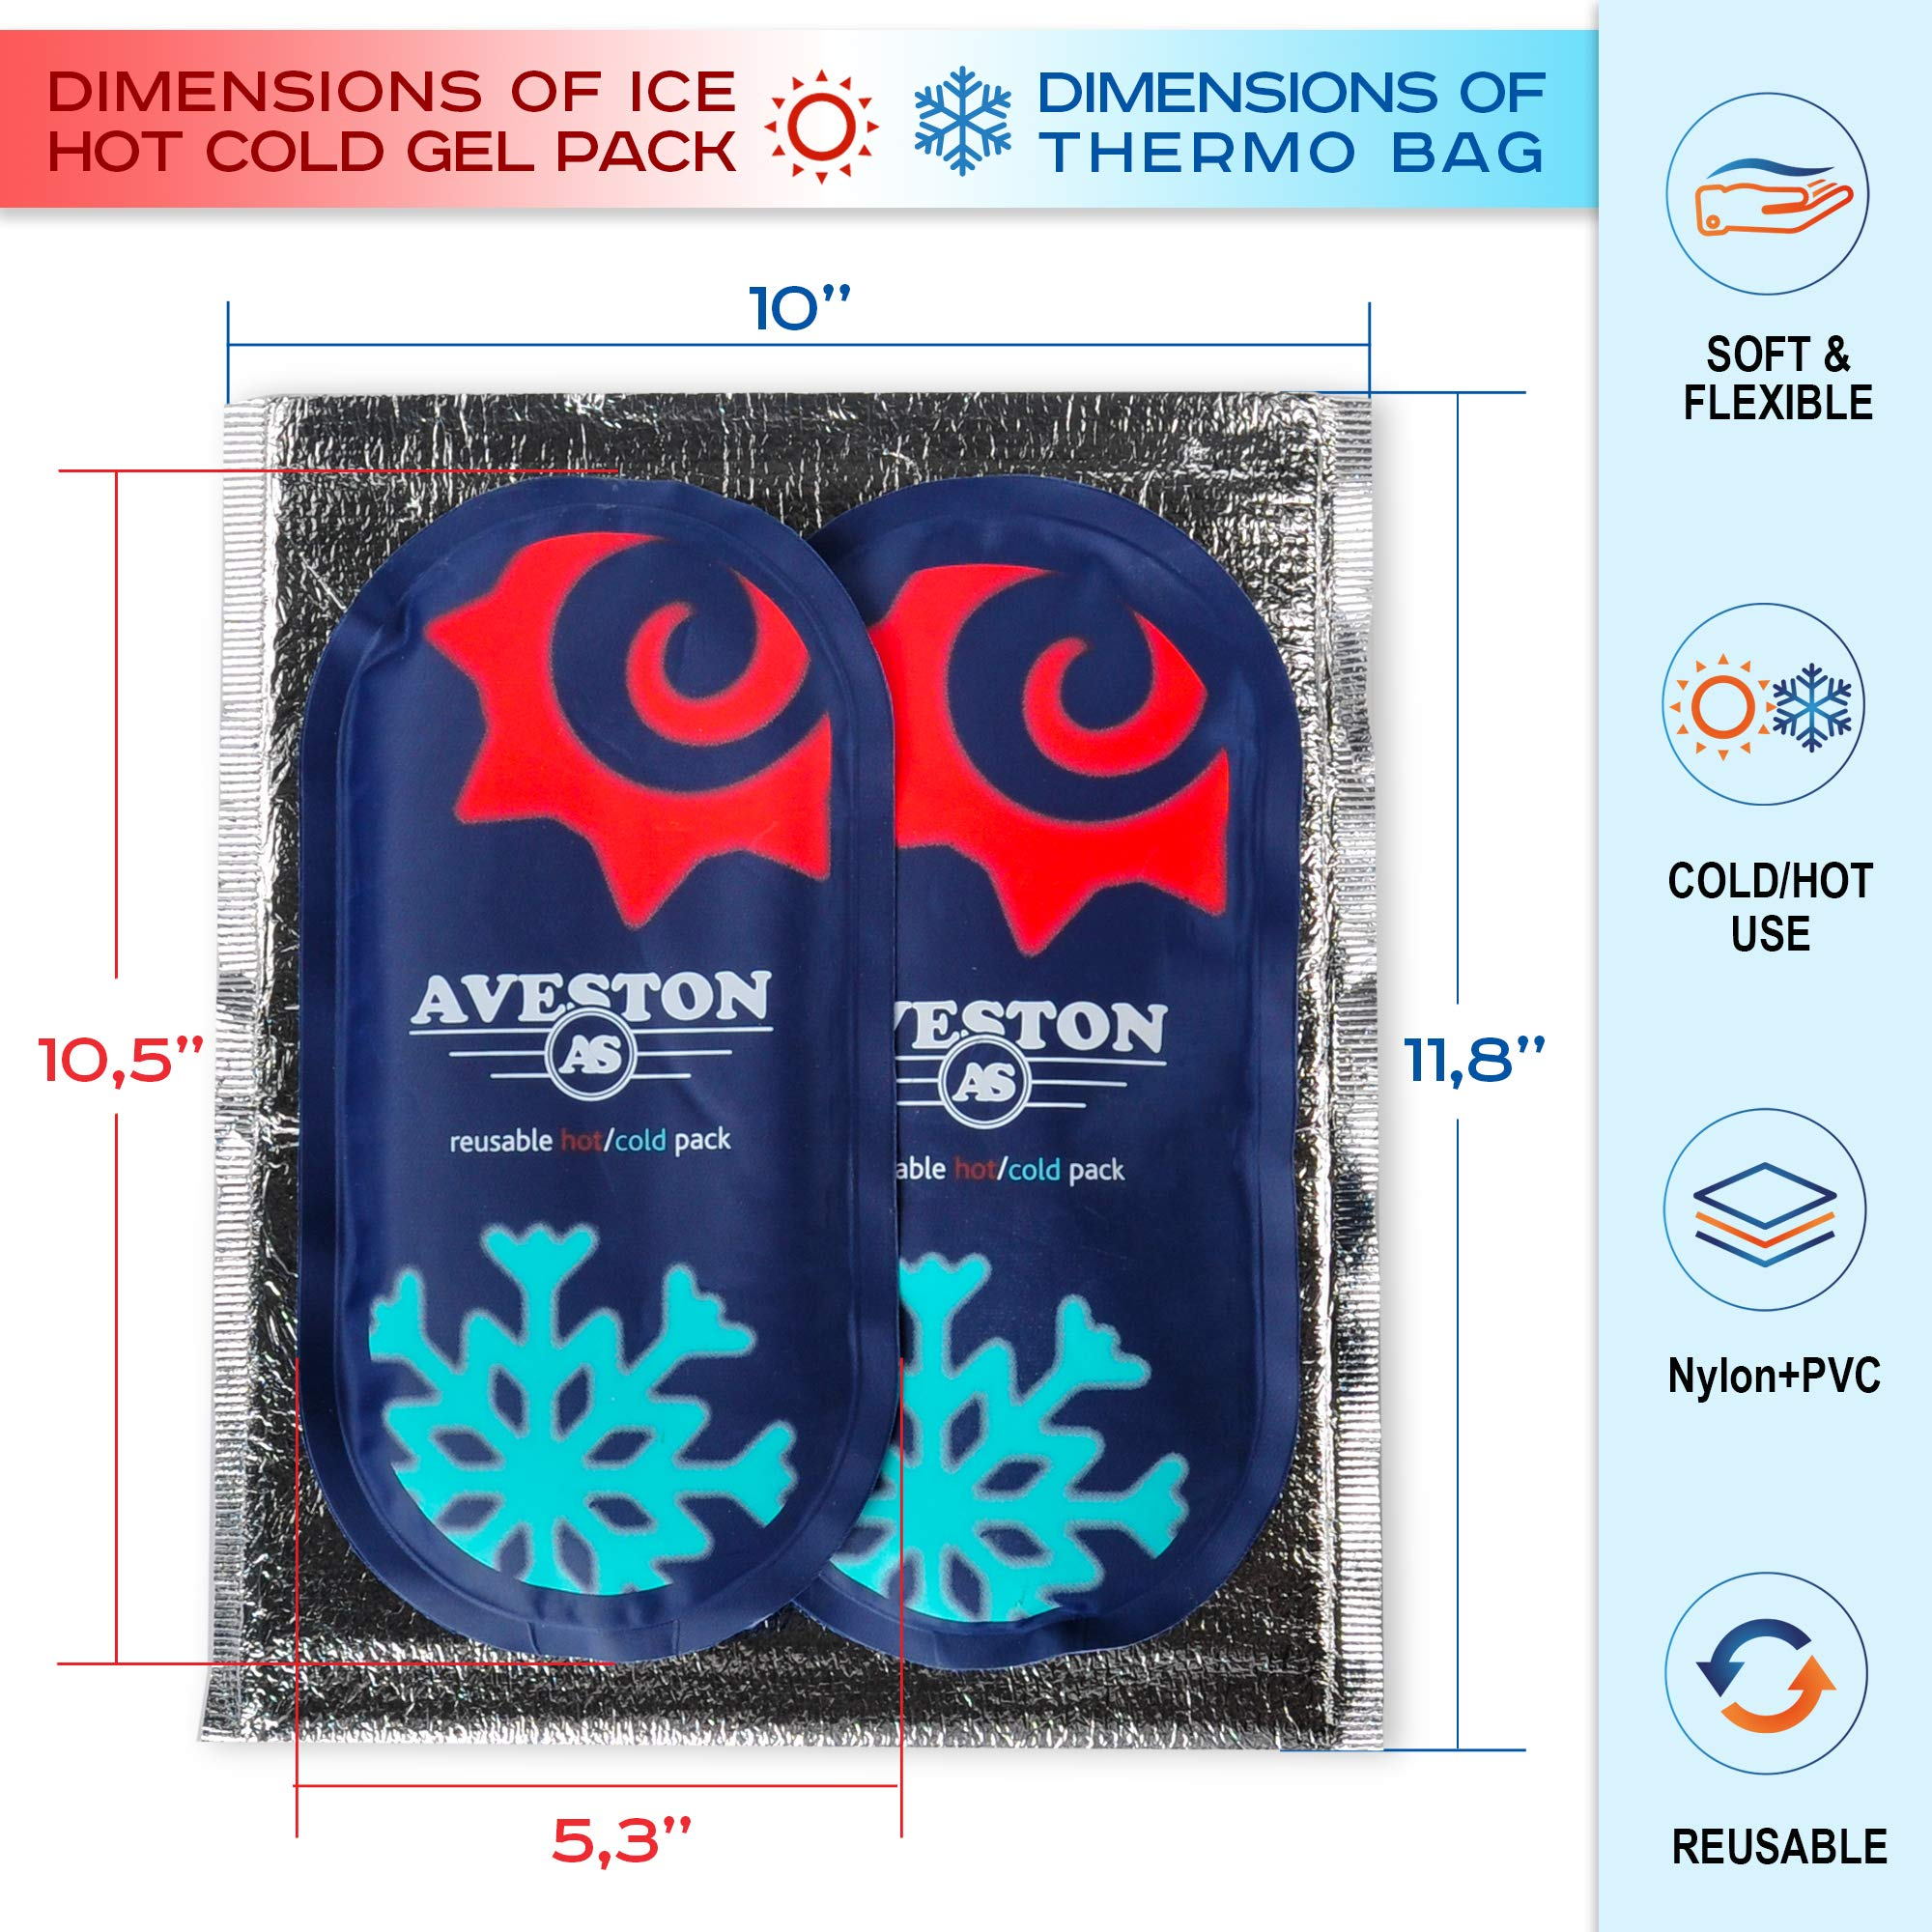 AVESTON Ice Gel Cold Pack for Injuries – Reusable Flexible 2 Ice Packs Set for Knee Ankle Back Shoulder Neck Hot Cold Therapy Compress for Women Men + Free Thermal Bag by AVESTON (Image #2)